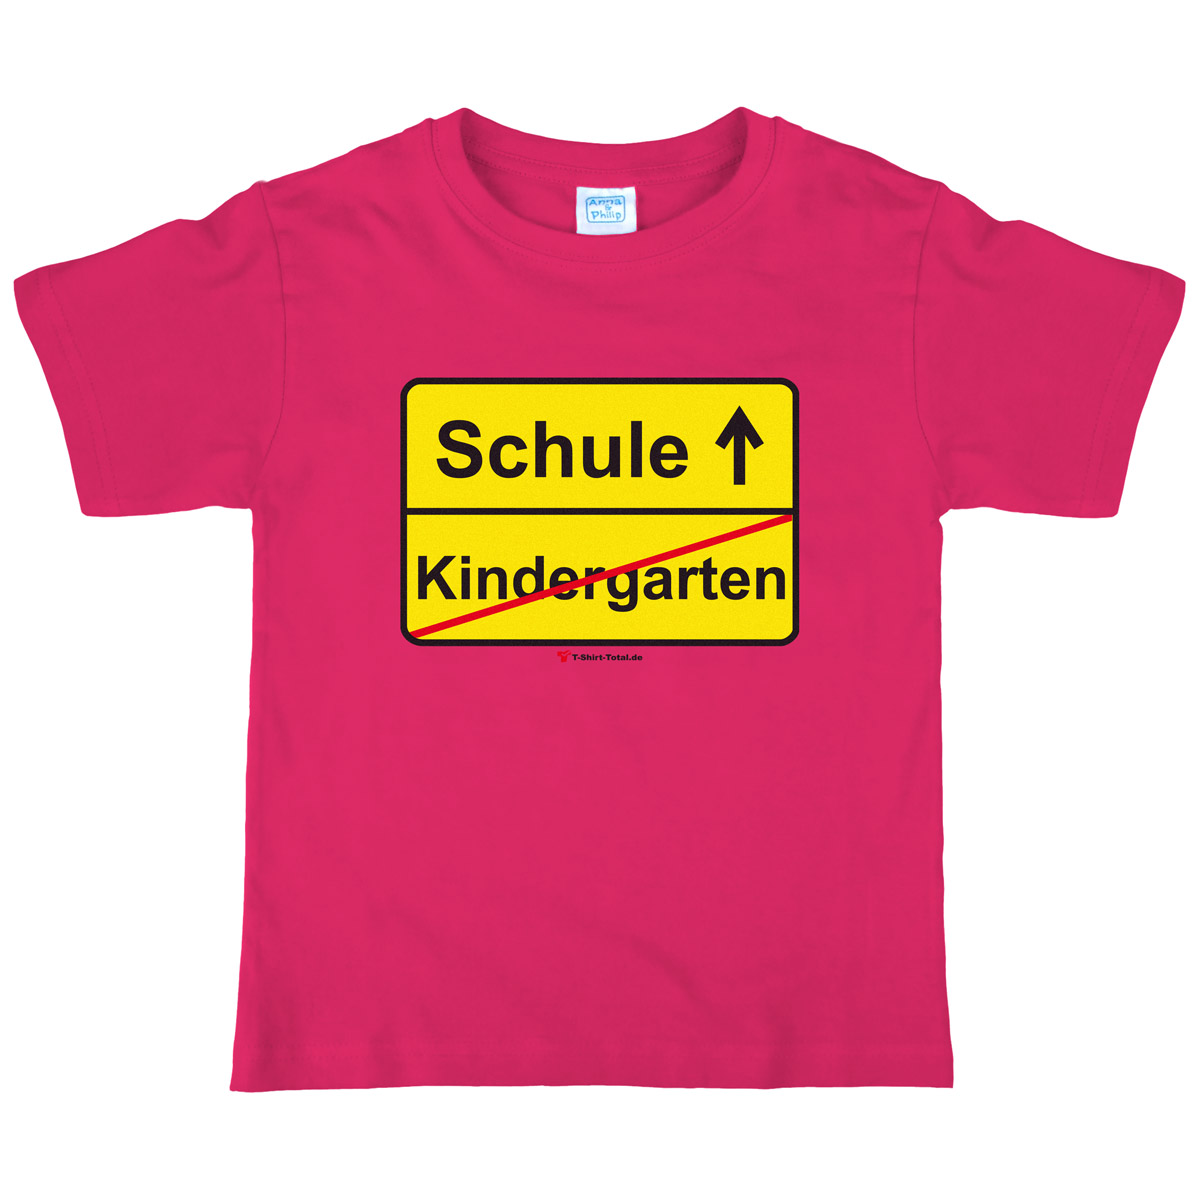 kindergarten schule t shirt. Black Bedroom Furniture Sets. Home Design Ideas